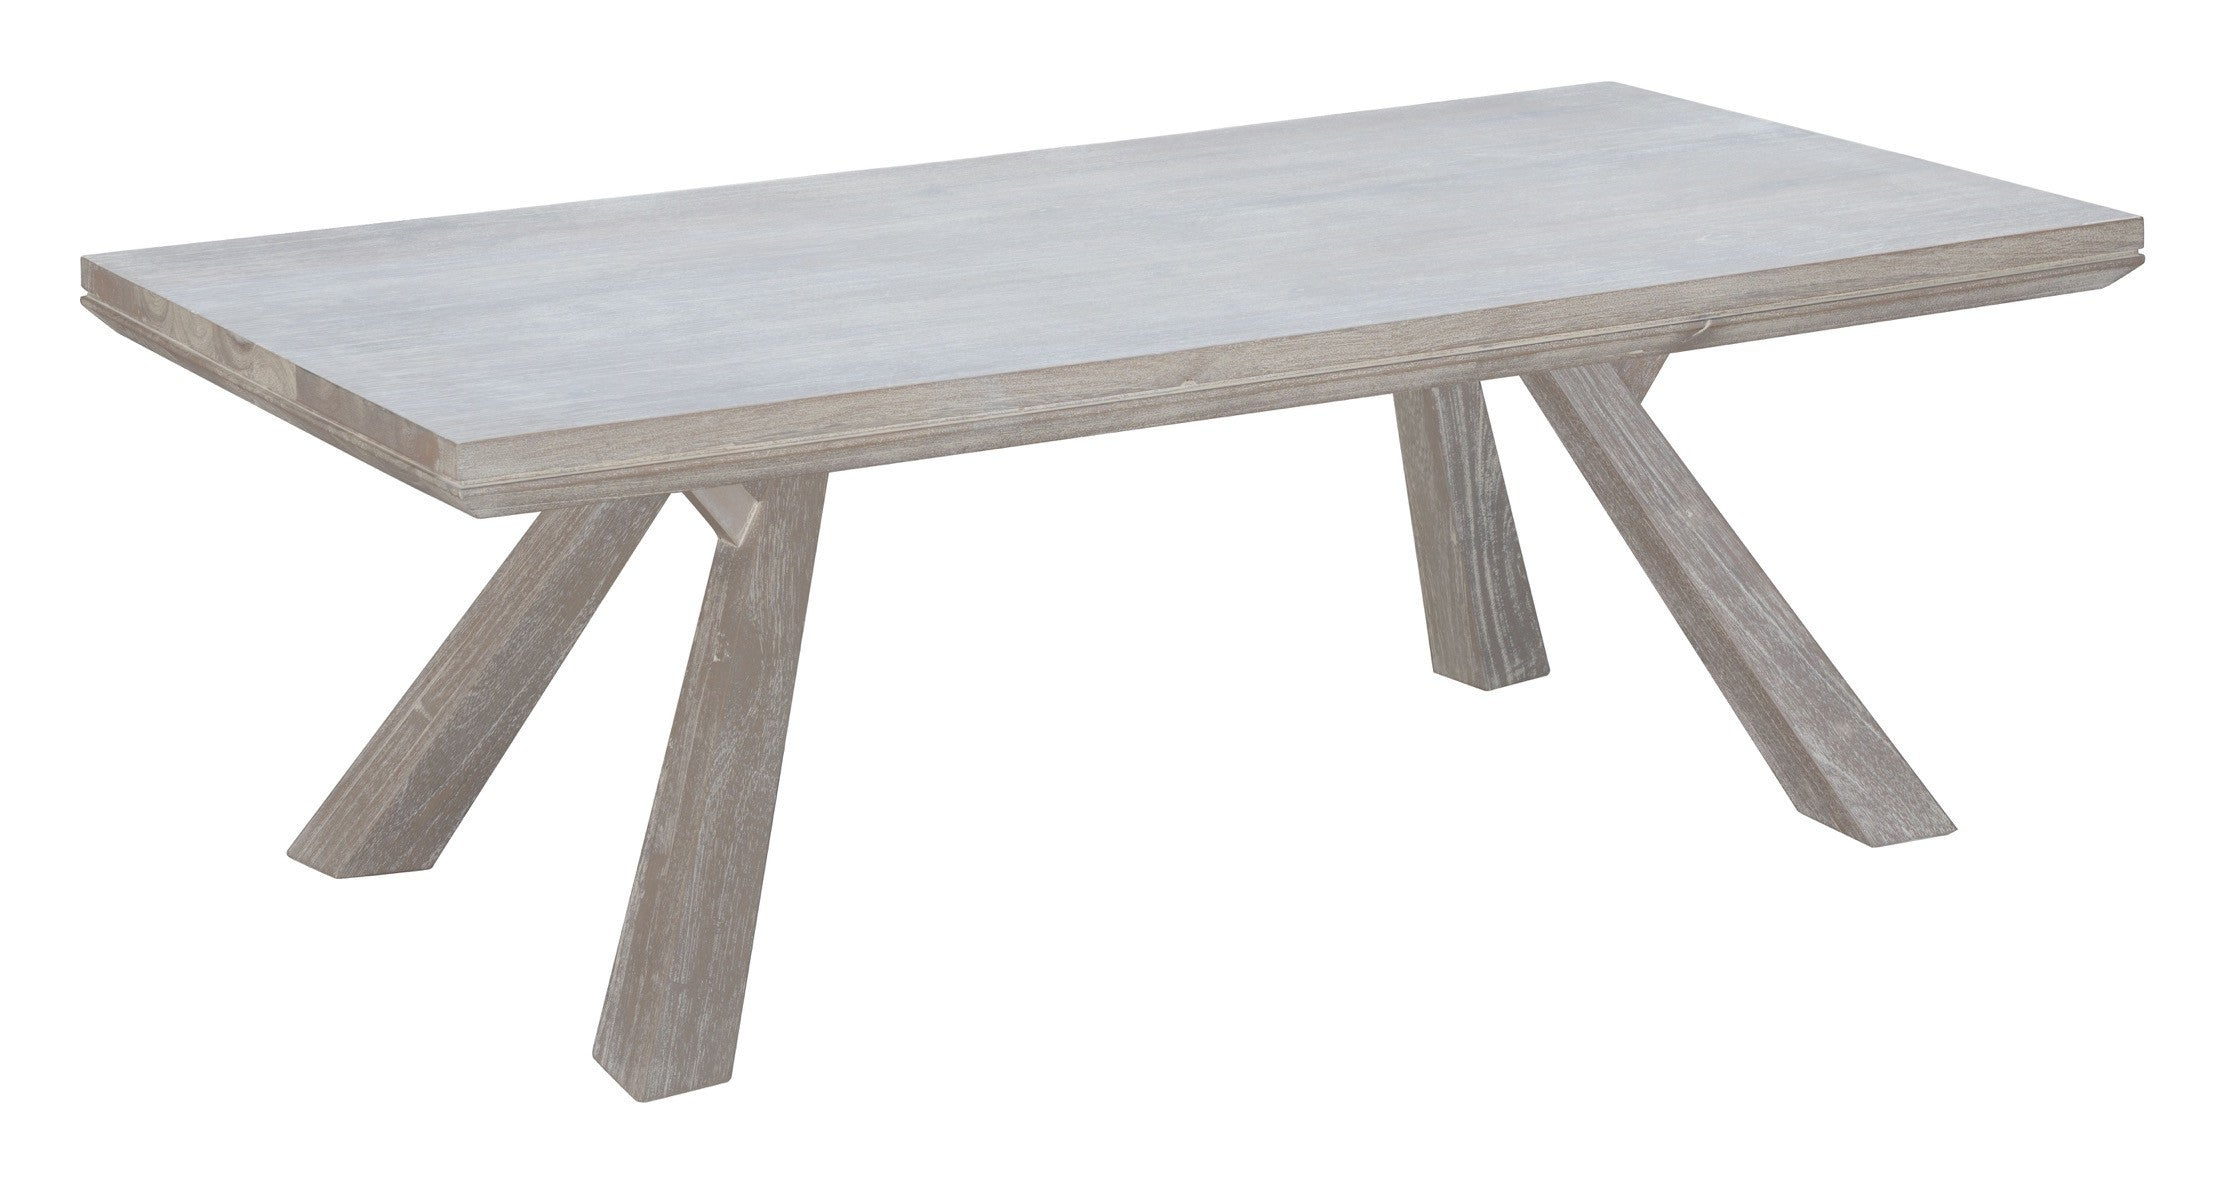 Beaumont Rectangular Coffee Table in Sun Drenched Acacia